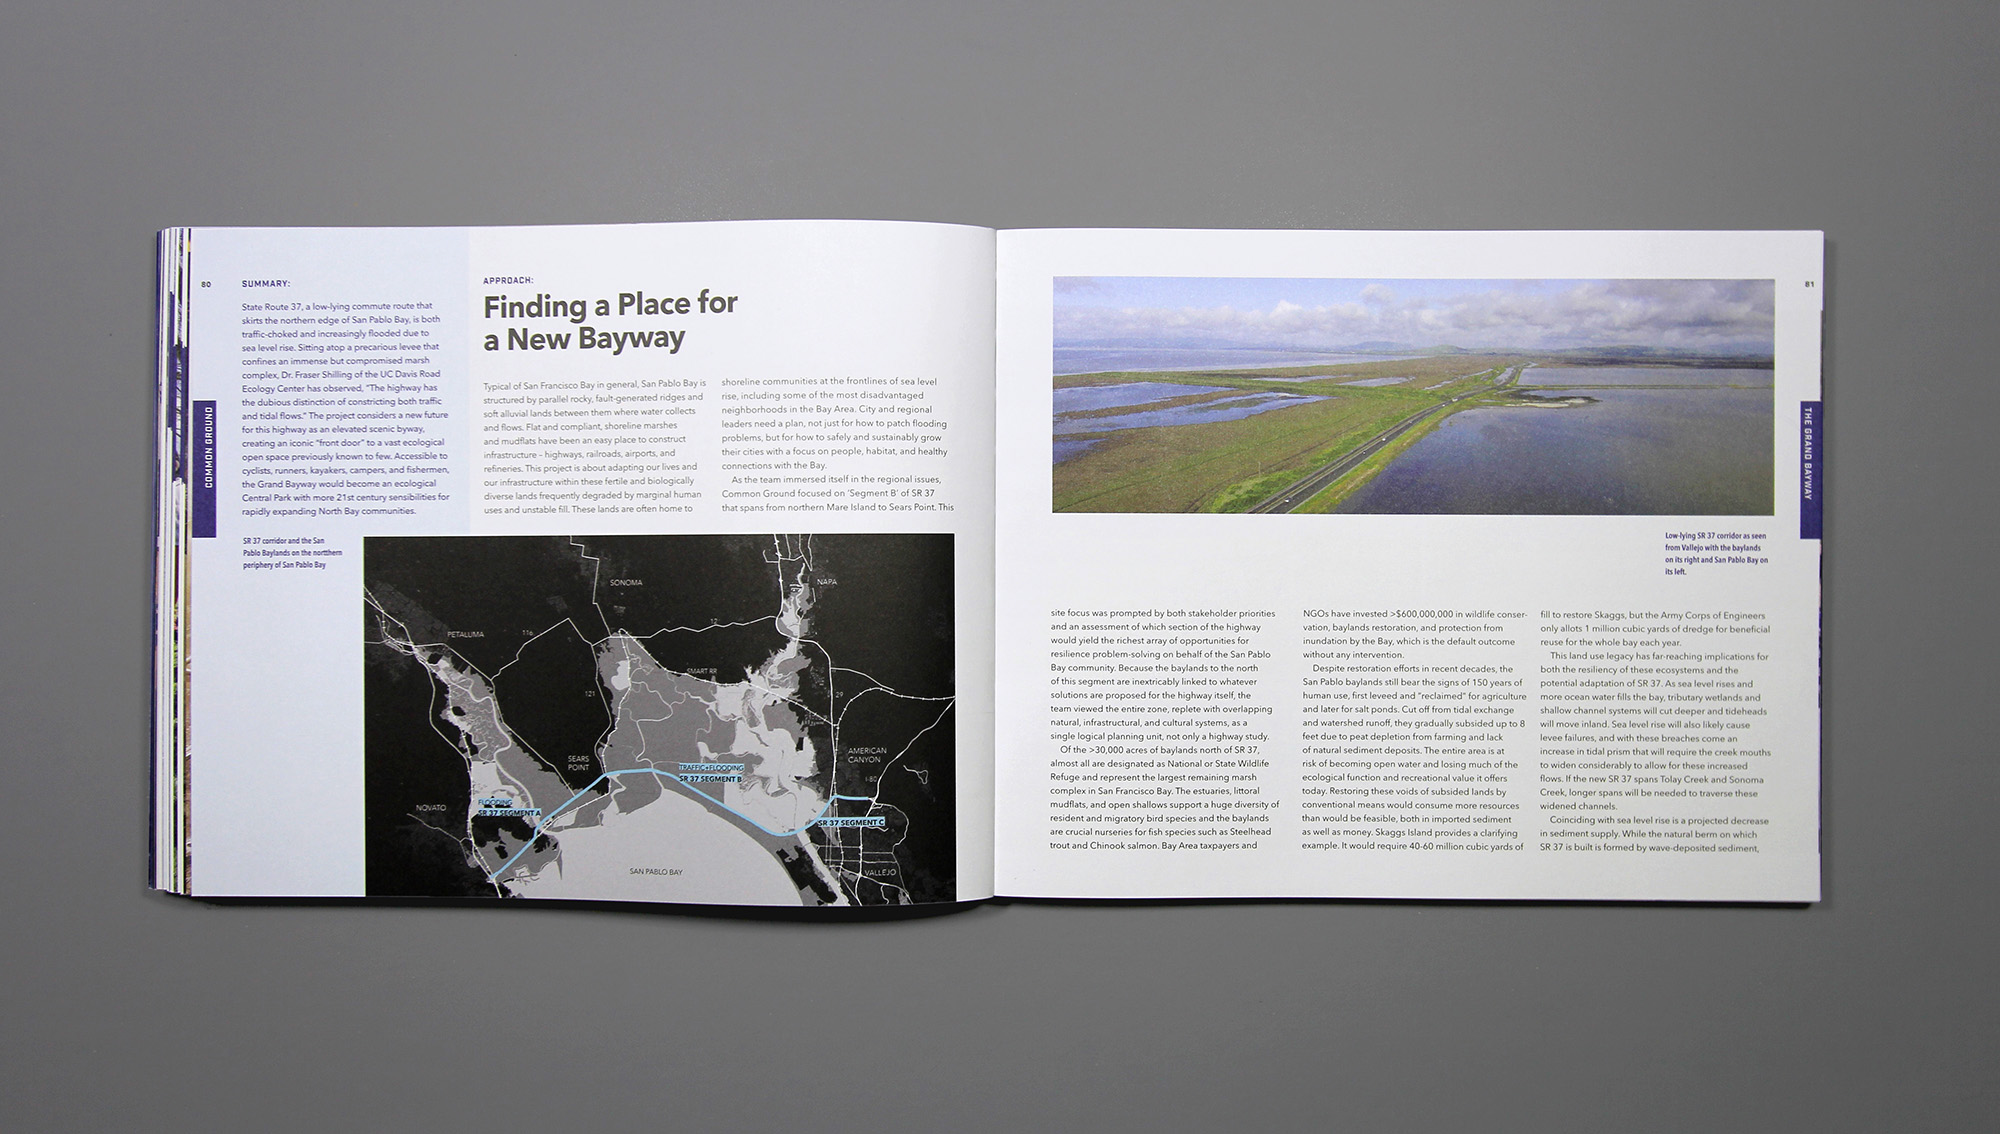 Resilient-by-Design-book-spread-7b